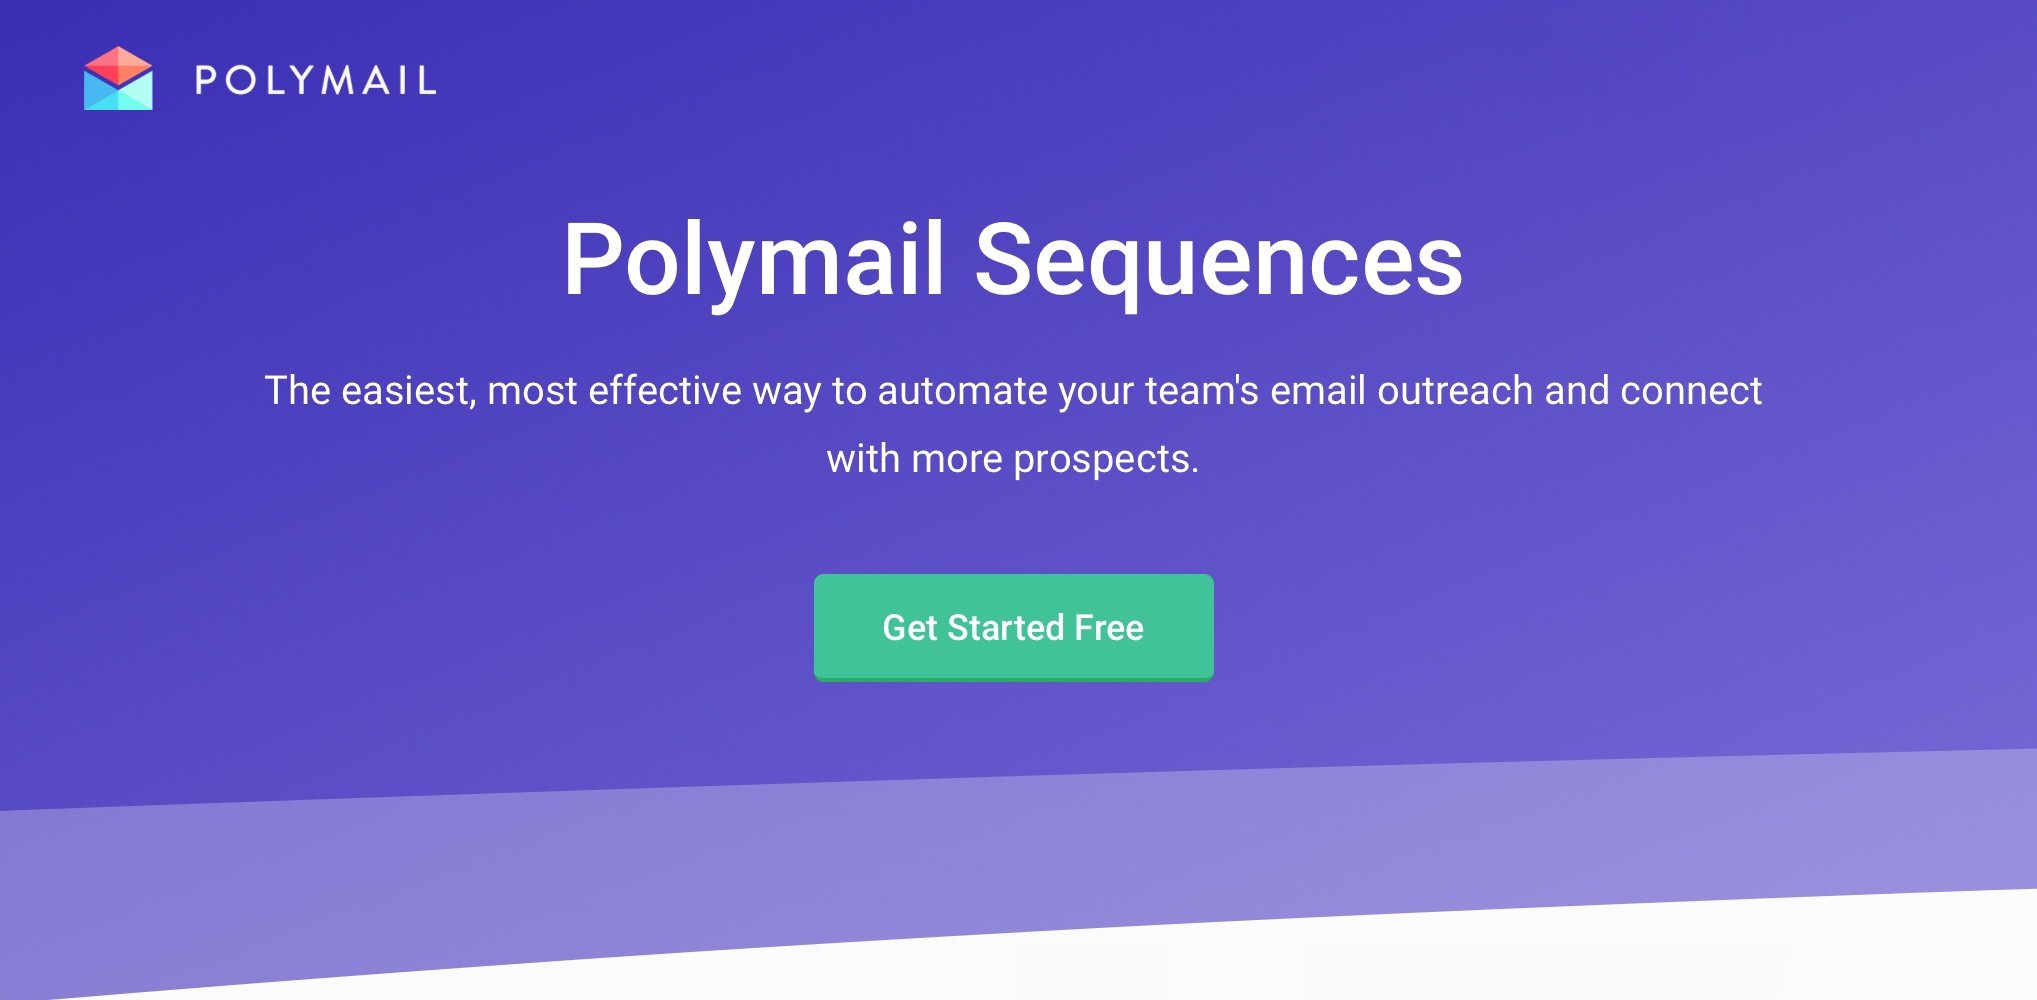 Polymail Sequences